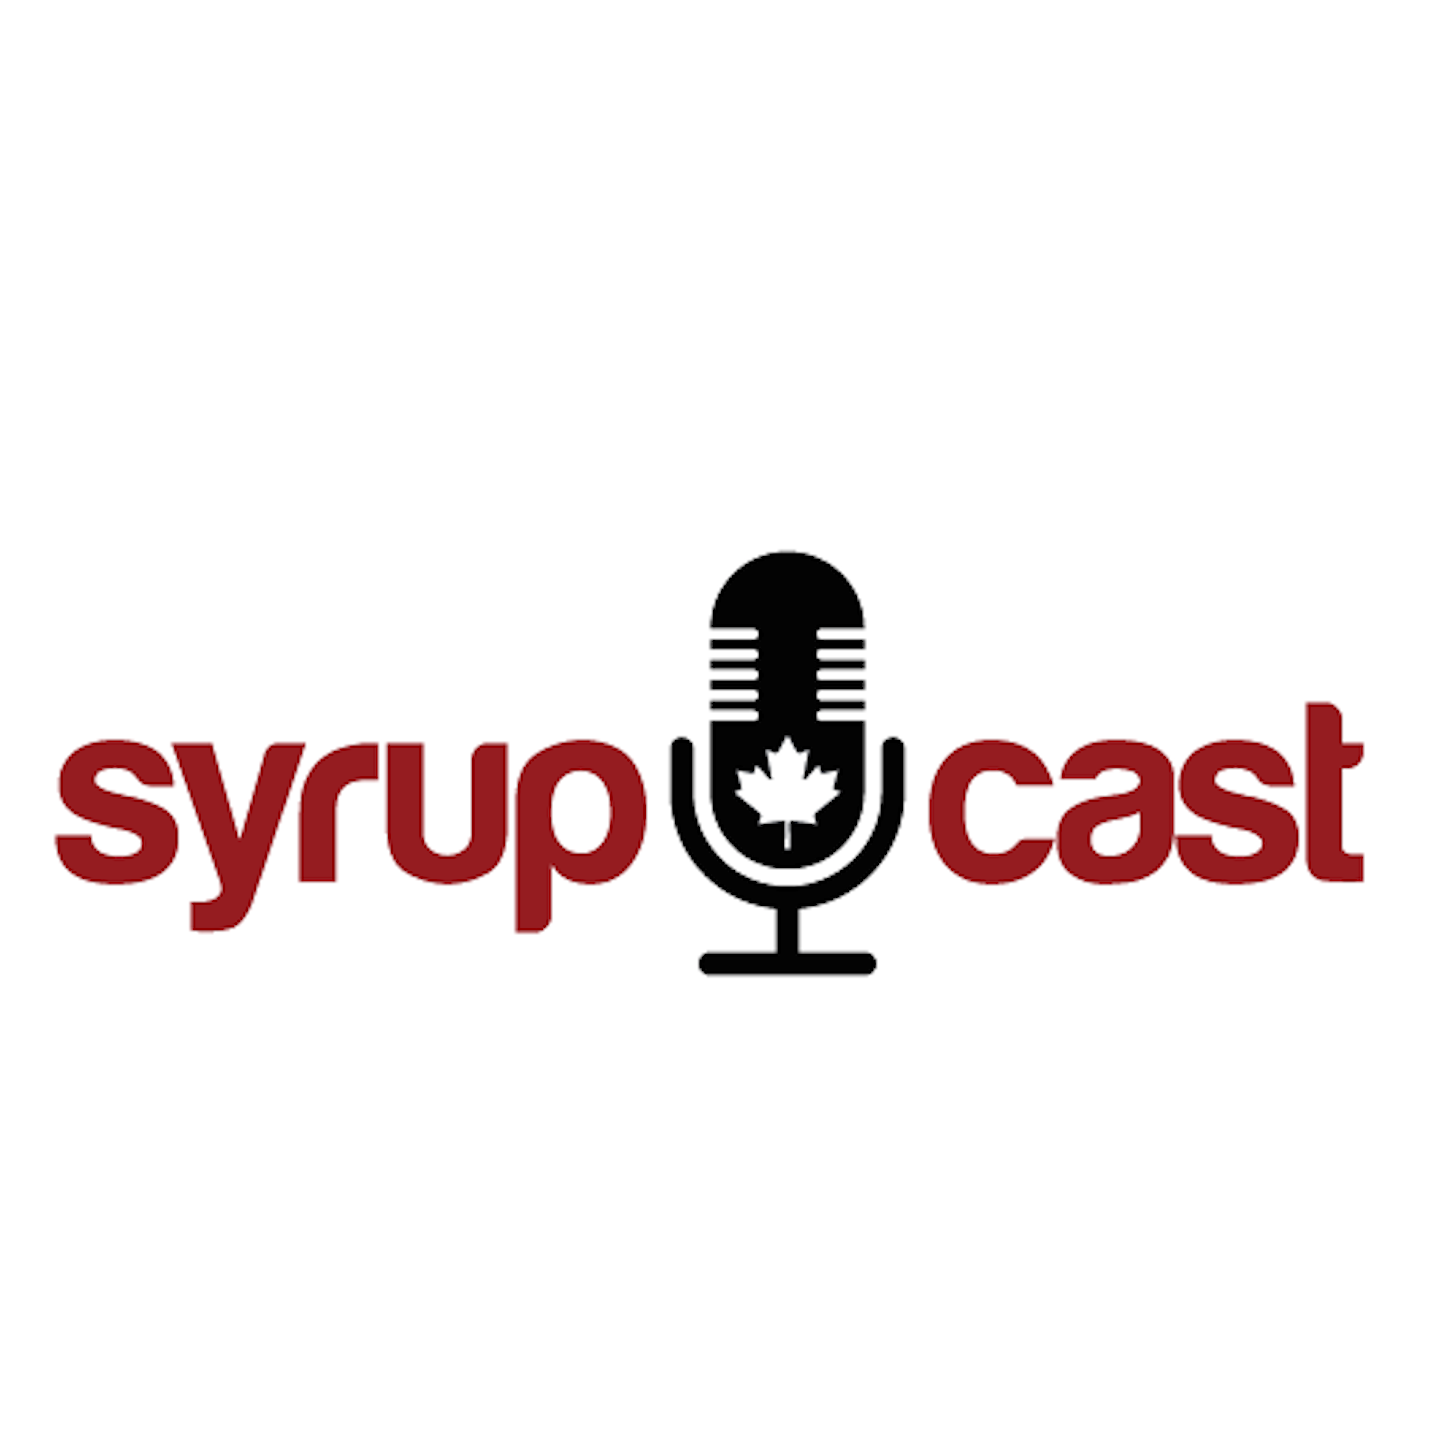 SyrupCast 66: The incentive enigma and swirling market winds